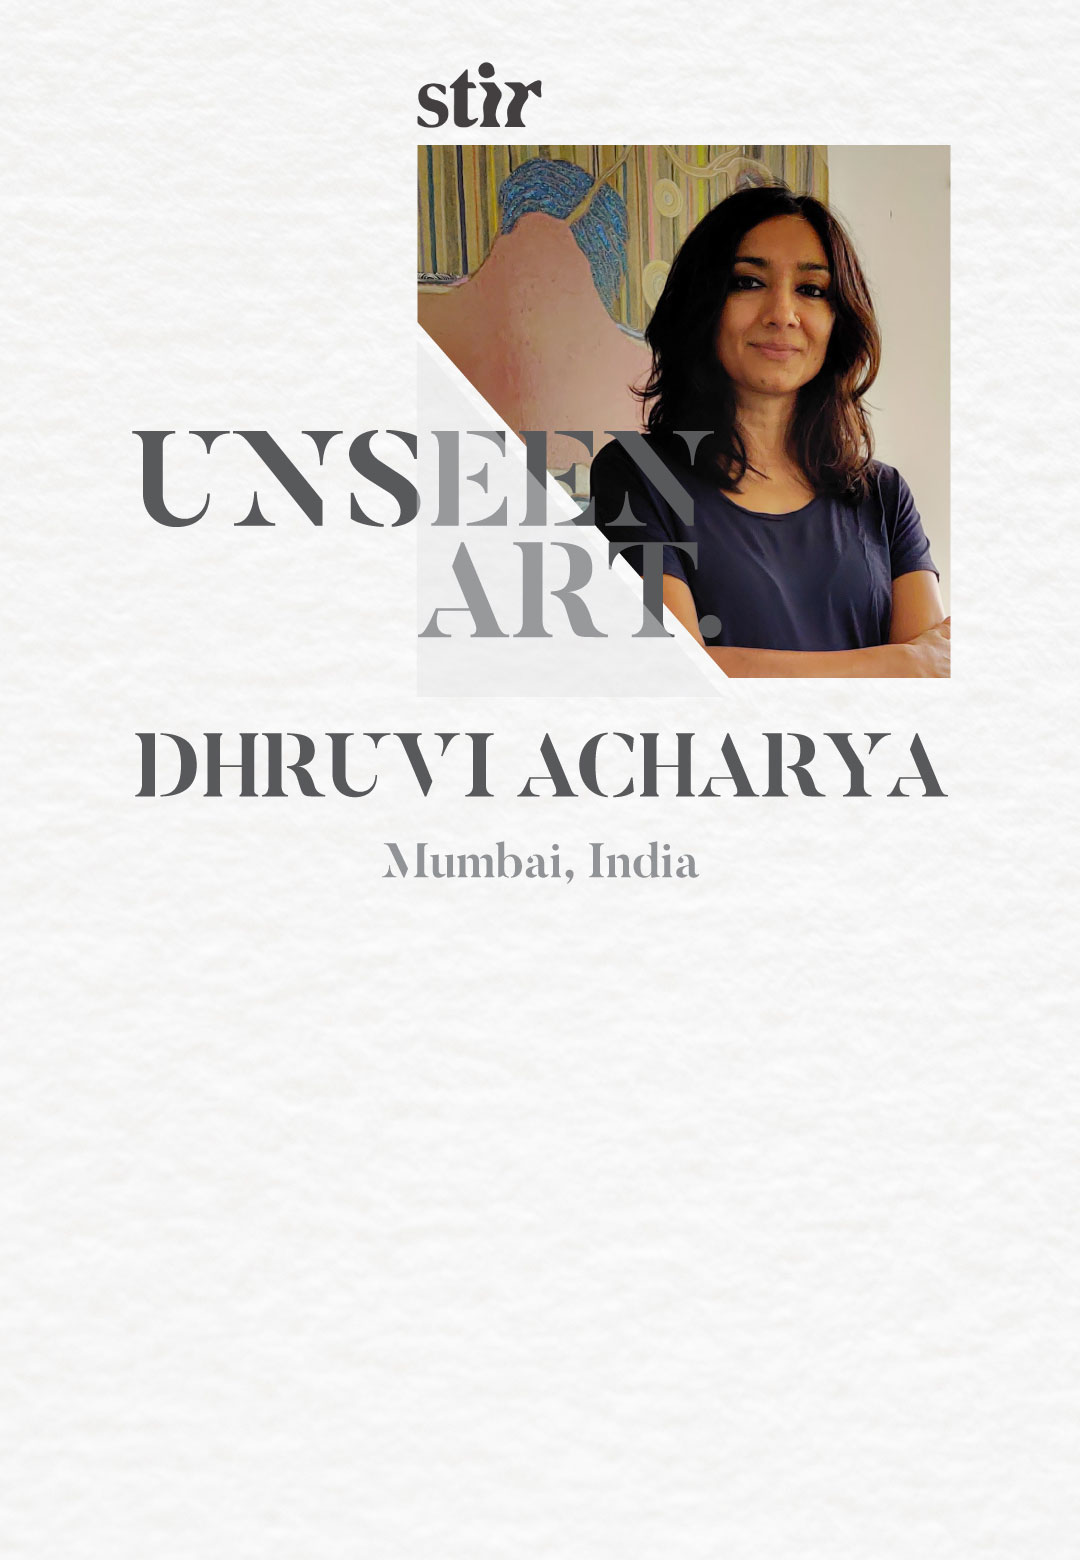 A profile image of the artist in her Mumbai studio | Did you feel it | Dhruvi Acharya | STIRworld